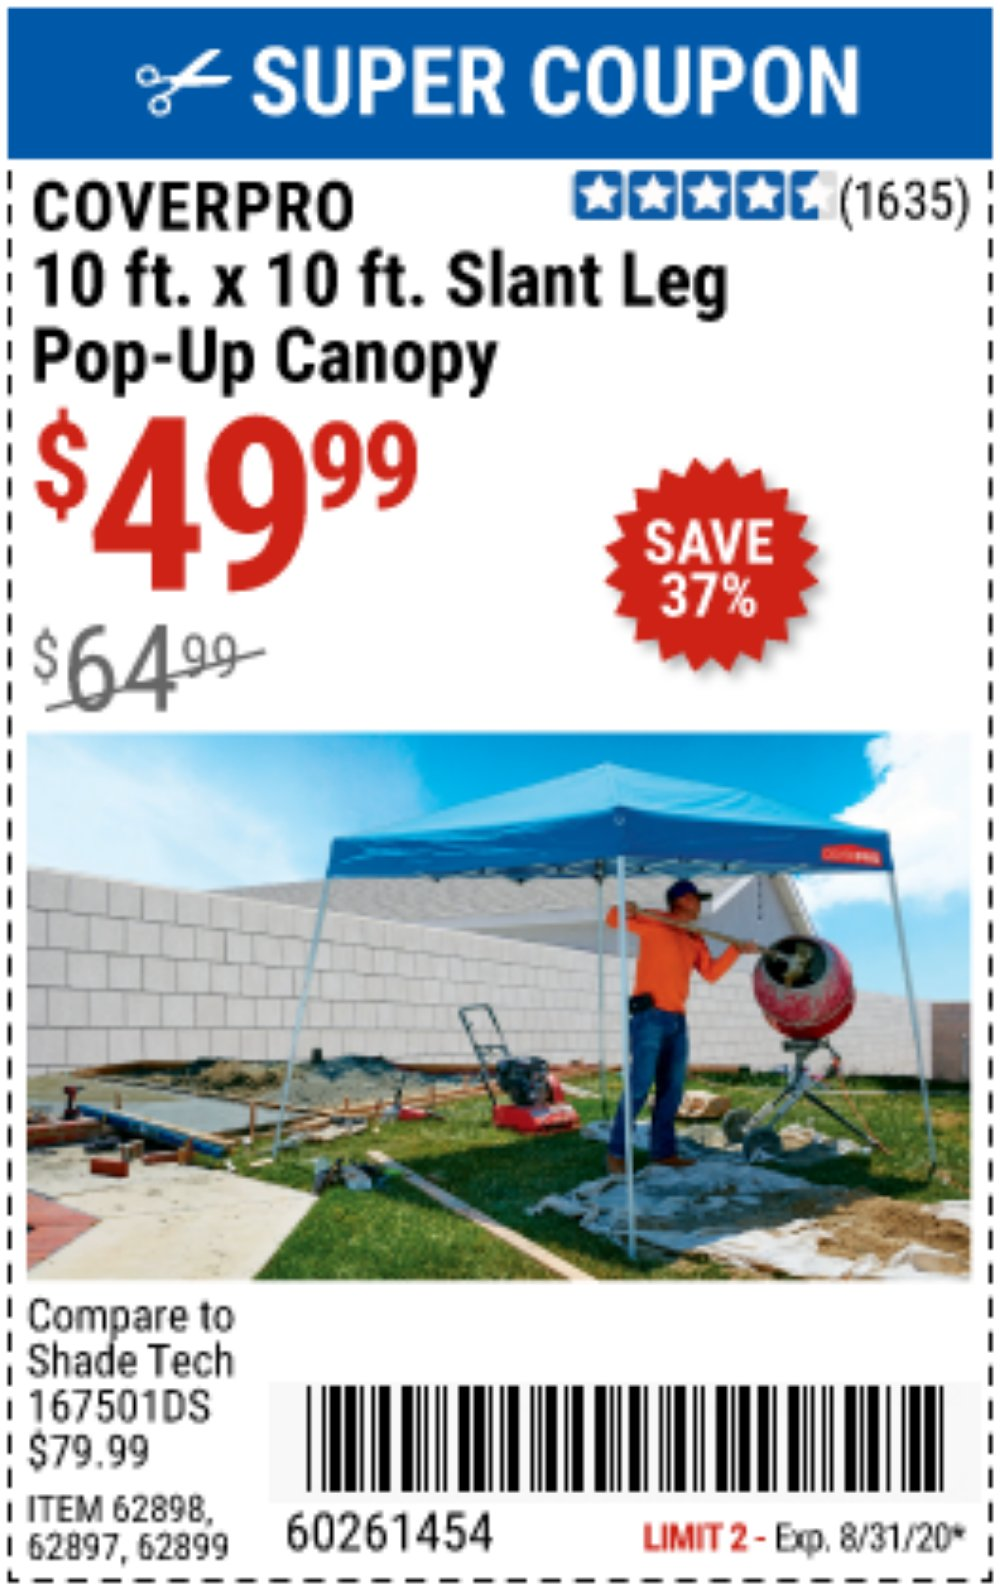 Harbor Freight Coupon, HF Coupons - Coverpro 10 Ft. X 10 Ft. Popup Canopy